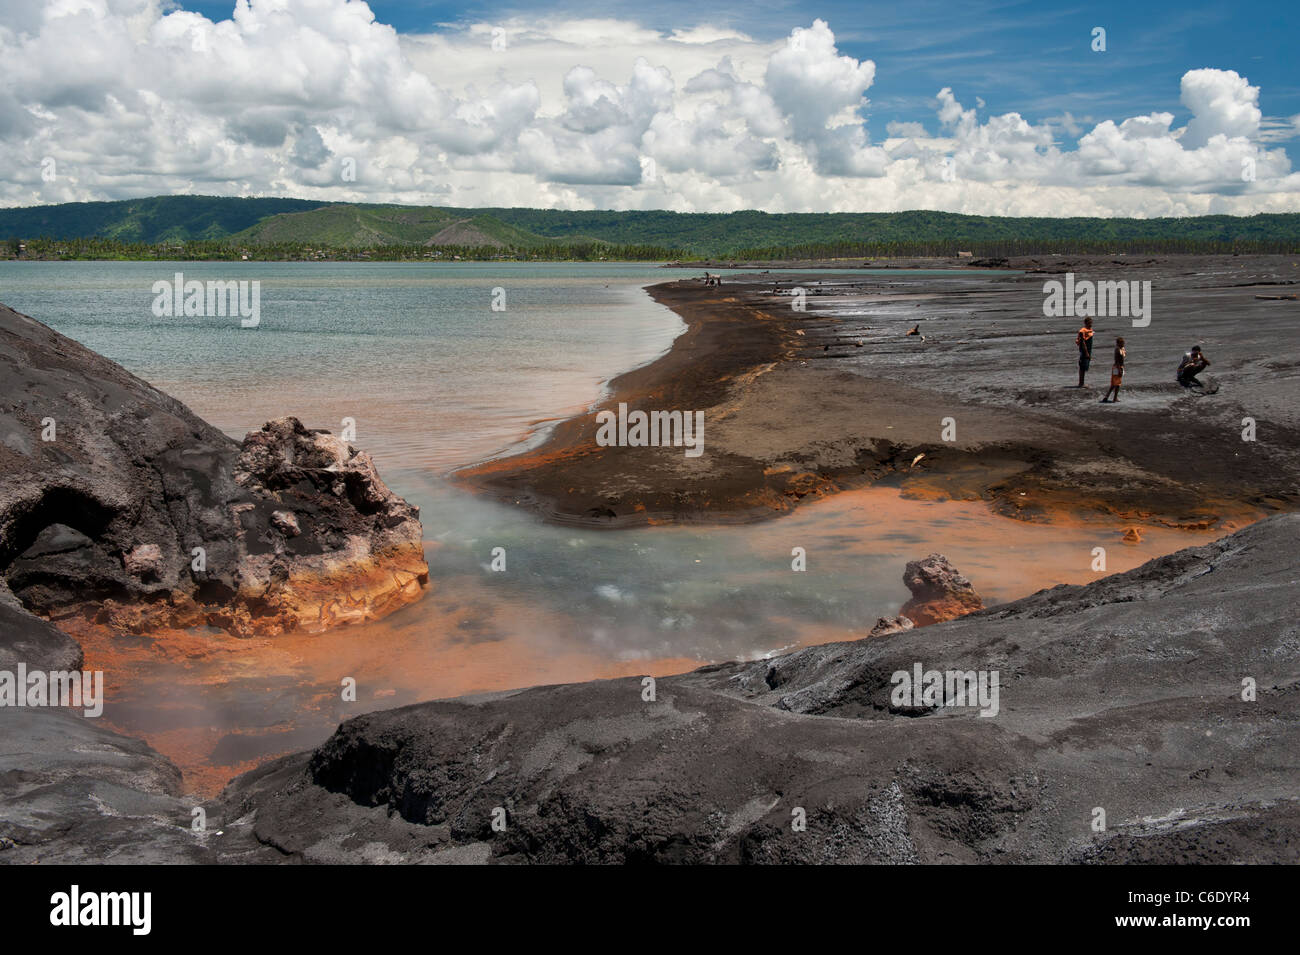 Hot Springs near the base of Tavurvur Volcano in the Rabaul Caldera